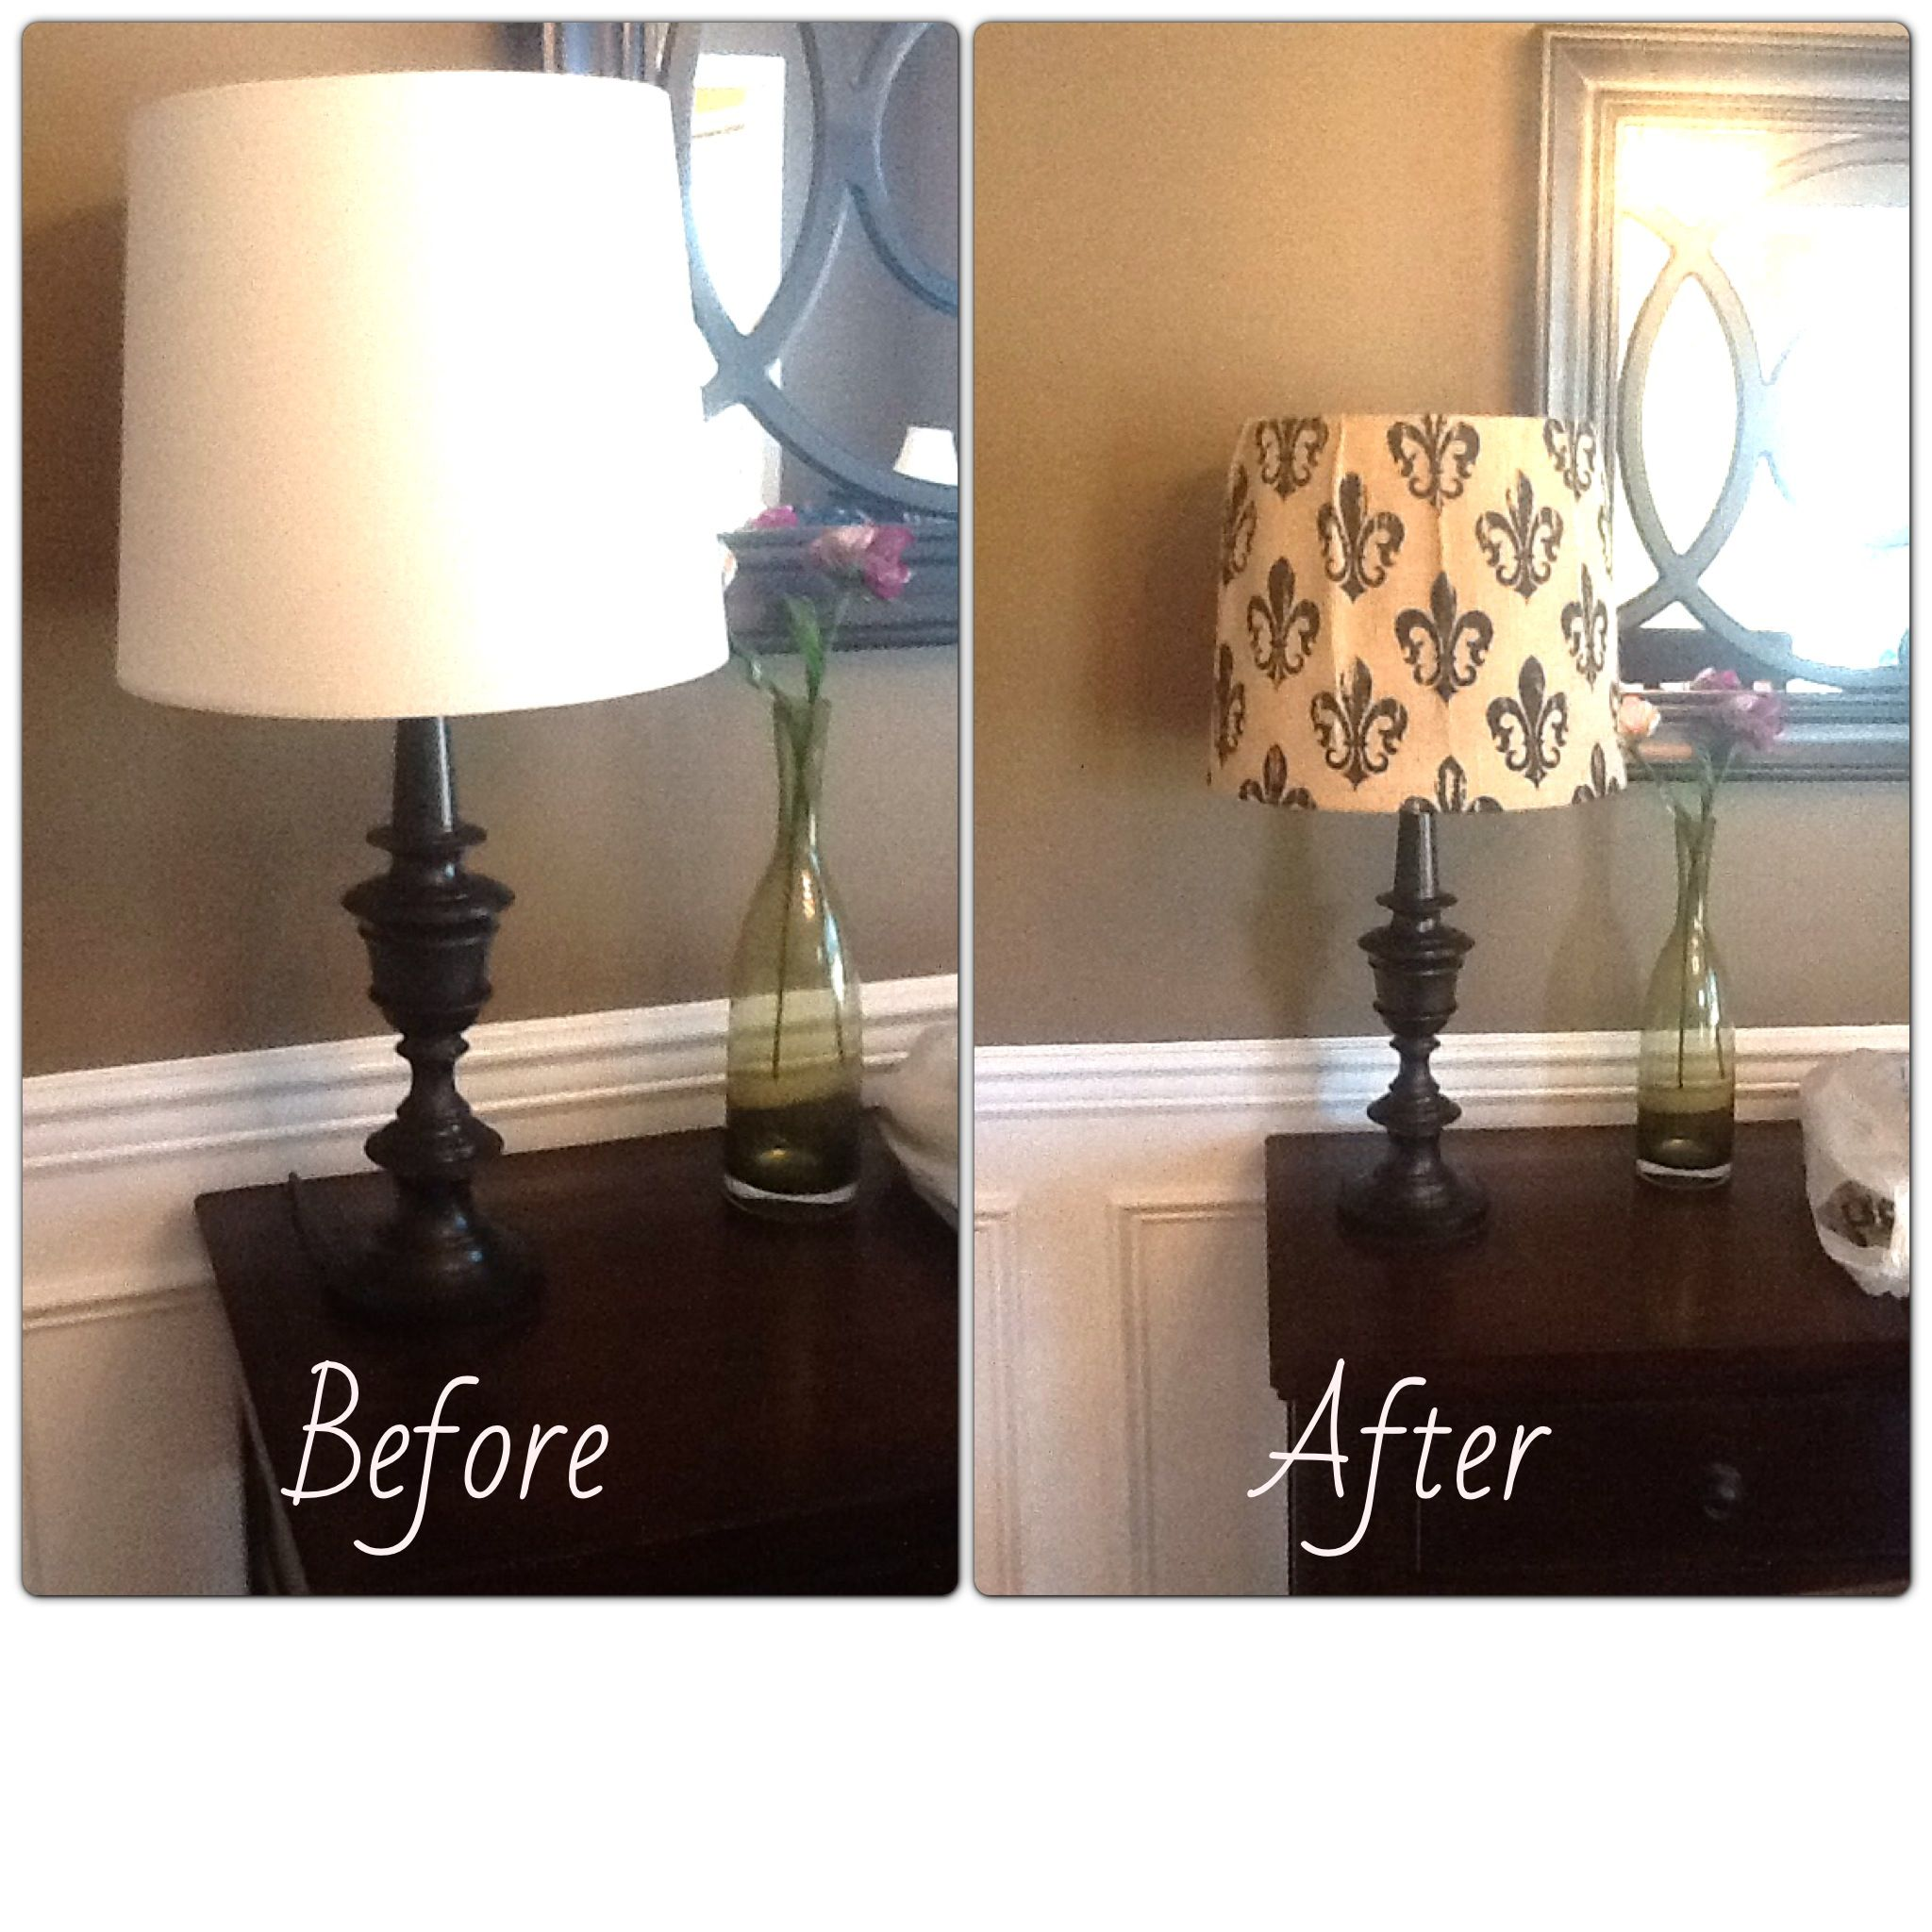 Hobby Lobby Lamp Shades Adorable My Easy Lamp Makeovercheap Plain White Lamp Shade With Burlap Inspiration